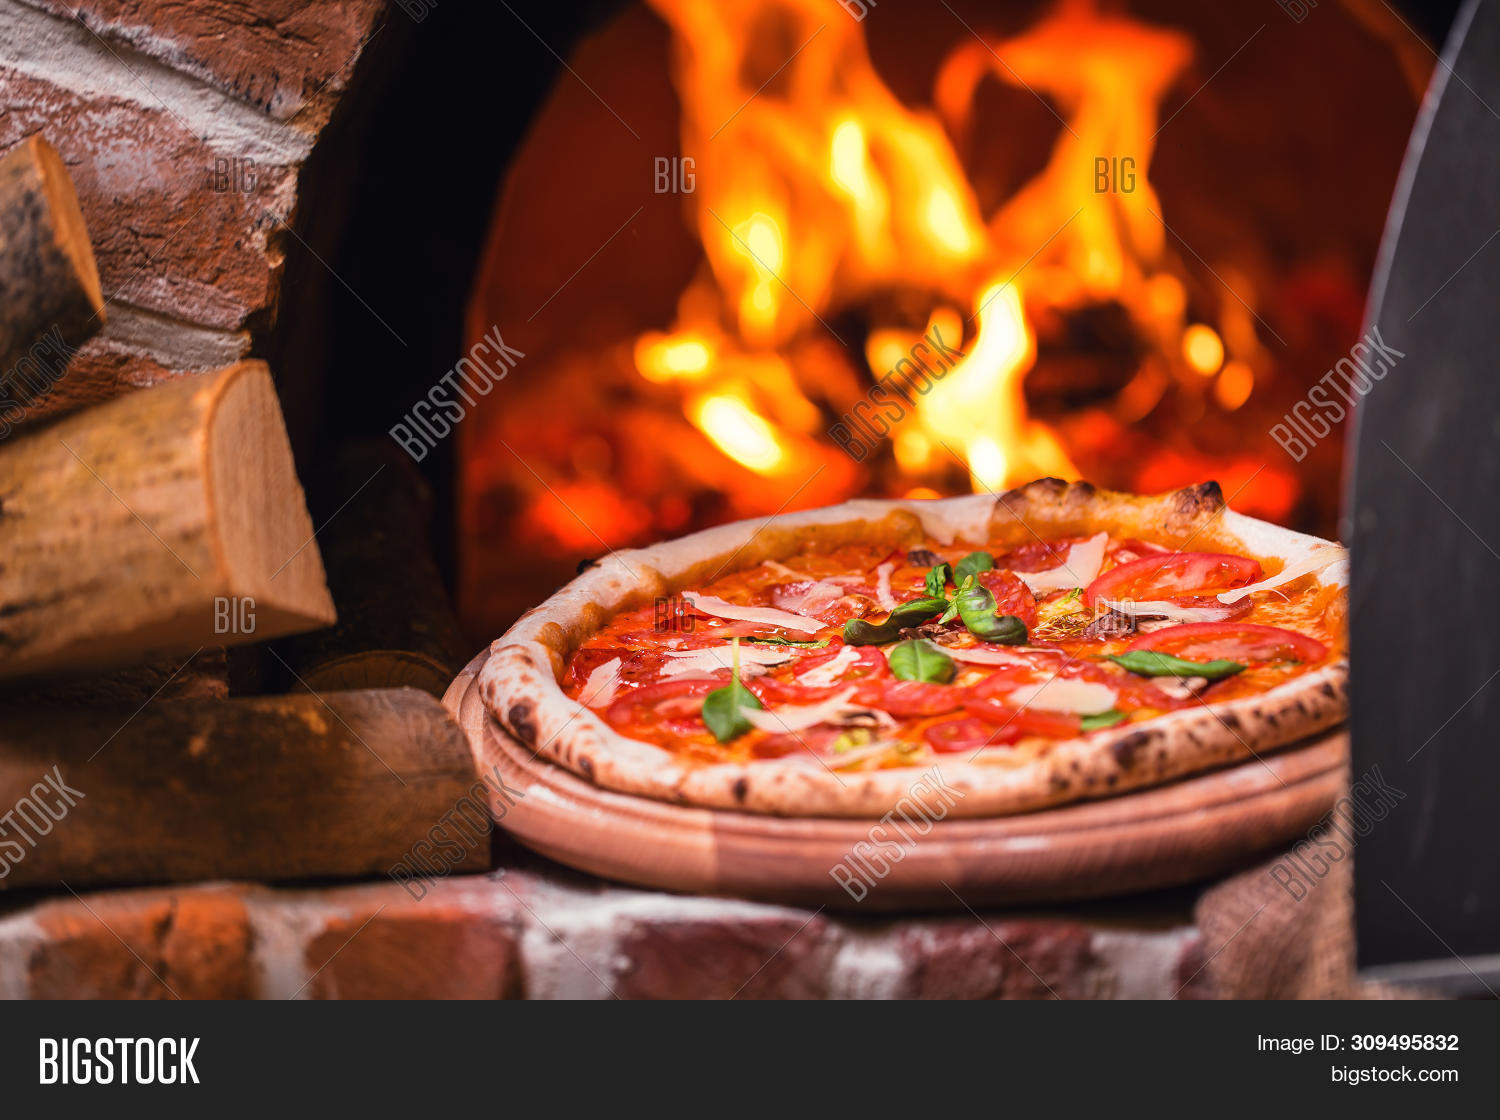 background,bake,baked,blaze,bread,brick,burn,burning,business,chamber,cheese,cook,cooking,cuisine,culture,delicious,dinner,dough,fast,fire,fireplace,firewood,flame,food,glow,heat,hot,inside,italian,italy,kitchen,light,meal,menu,mozzarella,natural,open,oven,pizza,pizzeria,red,restaurant,stone,stove,taking,tasty,traditional,wood